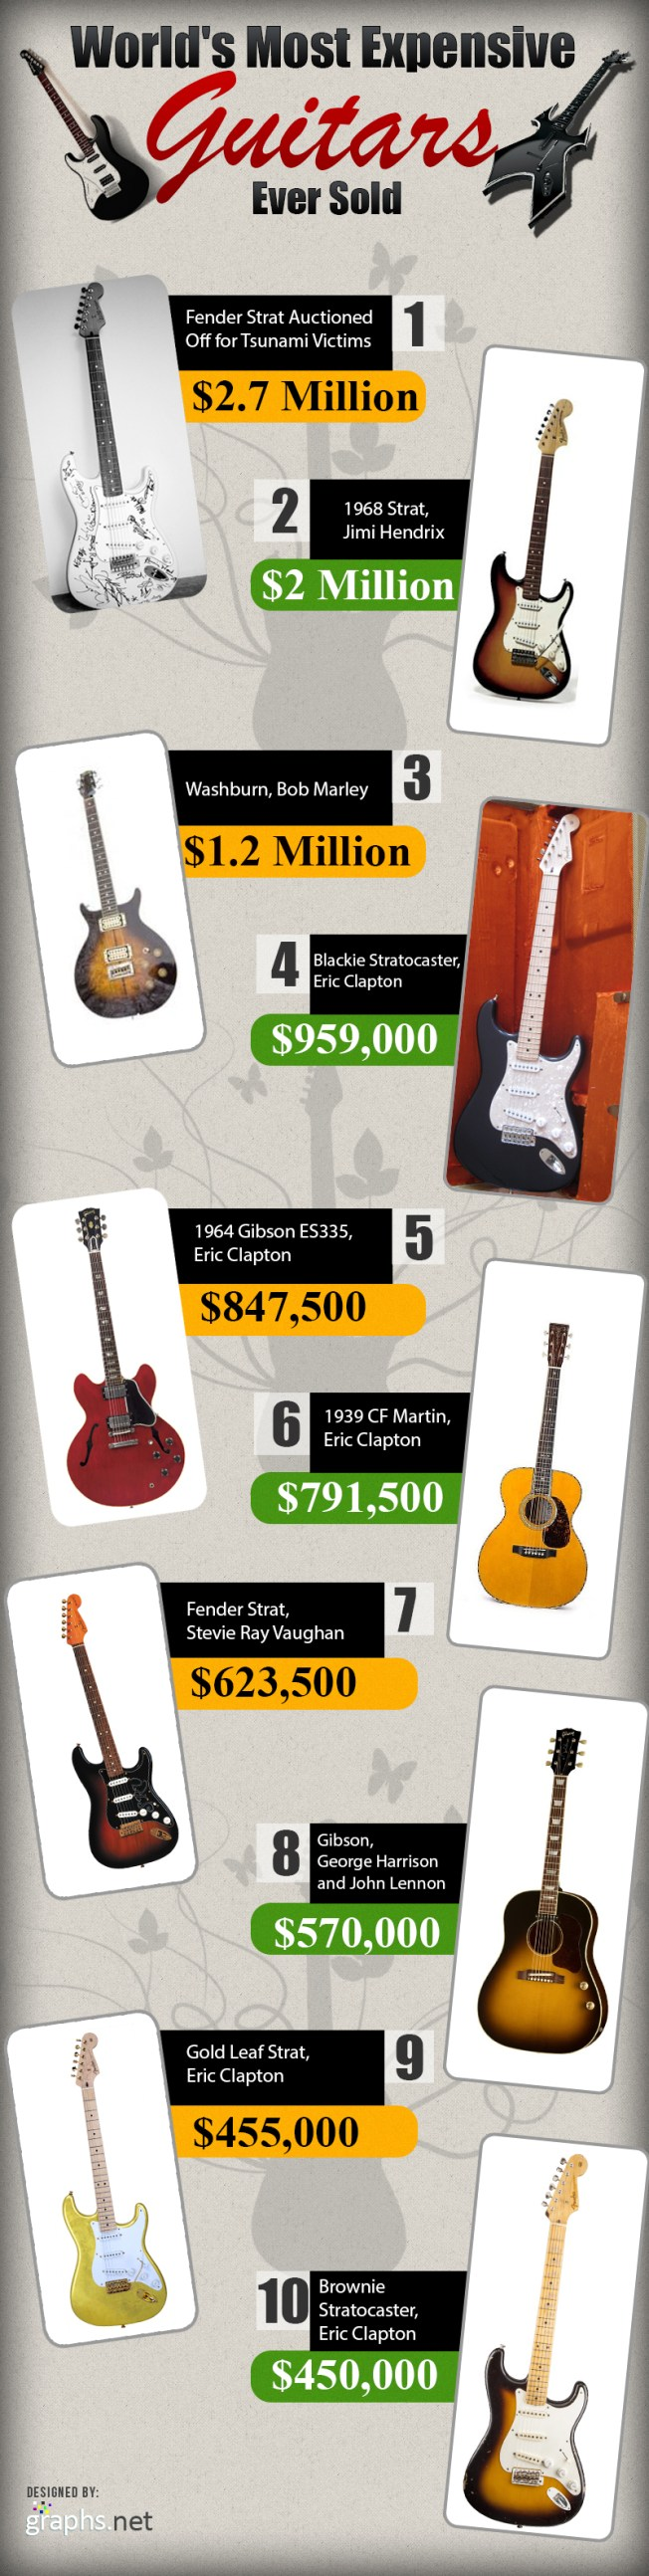 Worlds-Most-Expensive-Guitars-Ever-Sold